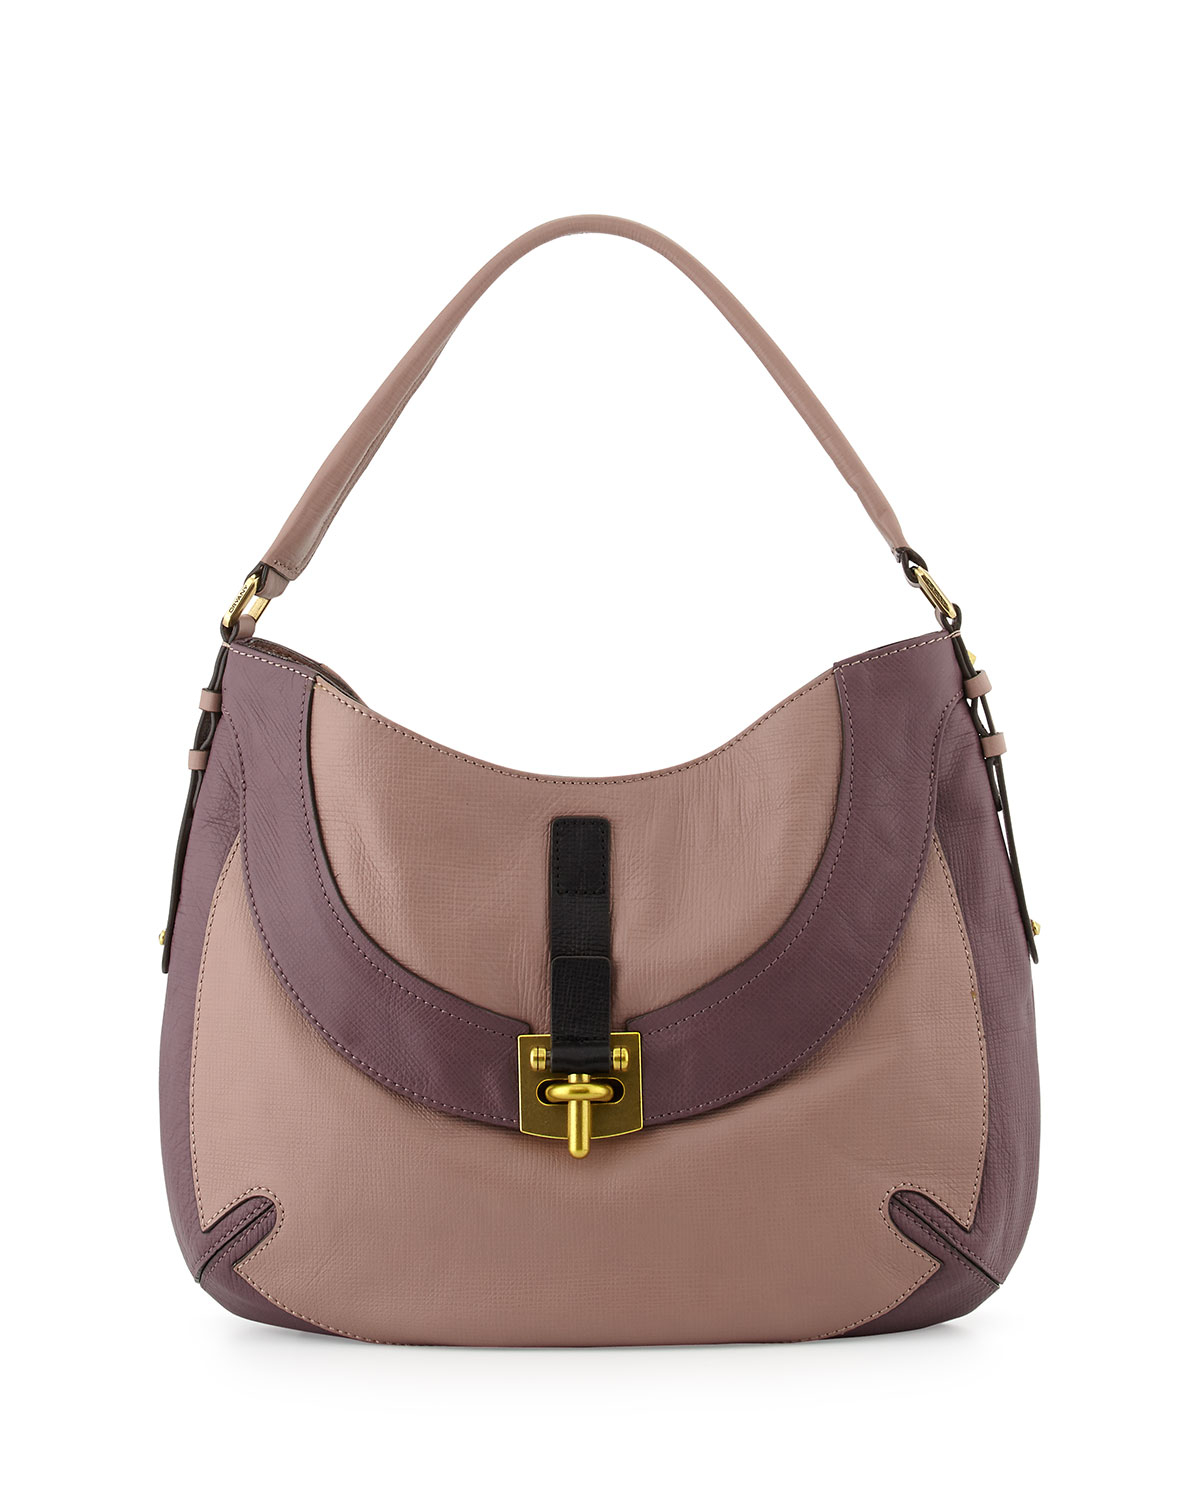 Oryany Bessie Colorblock Leather Hobo Bag in Brown  d849c7cd6604e